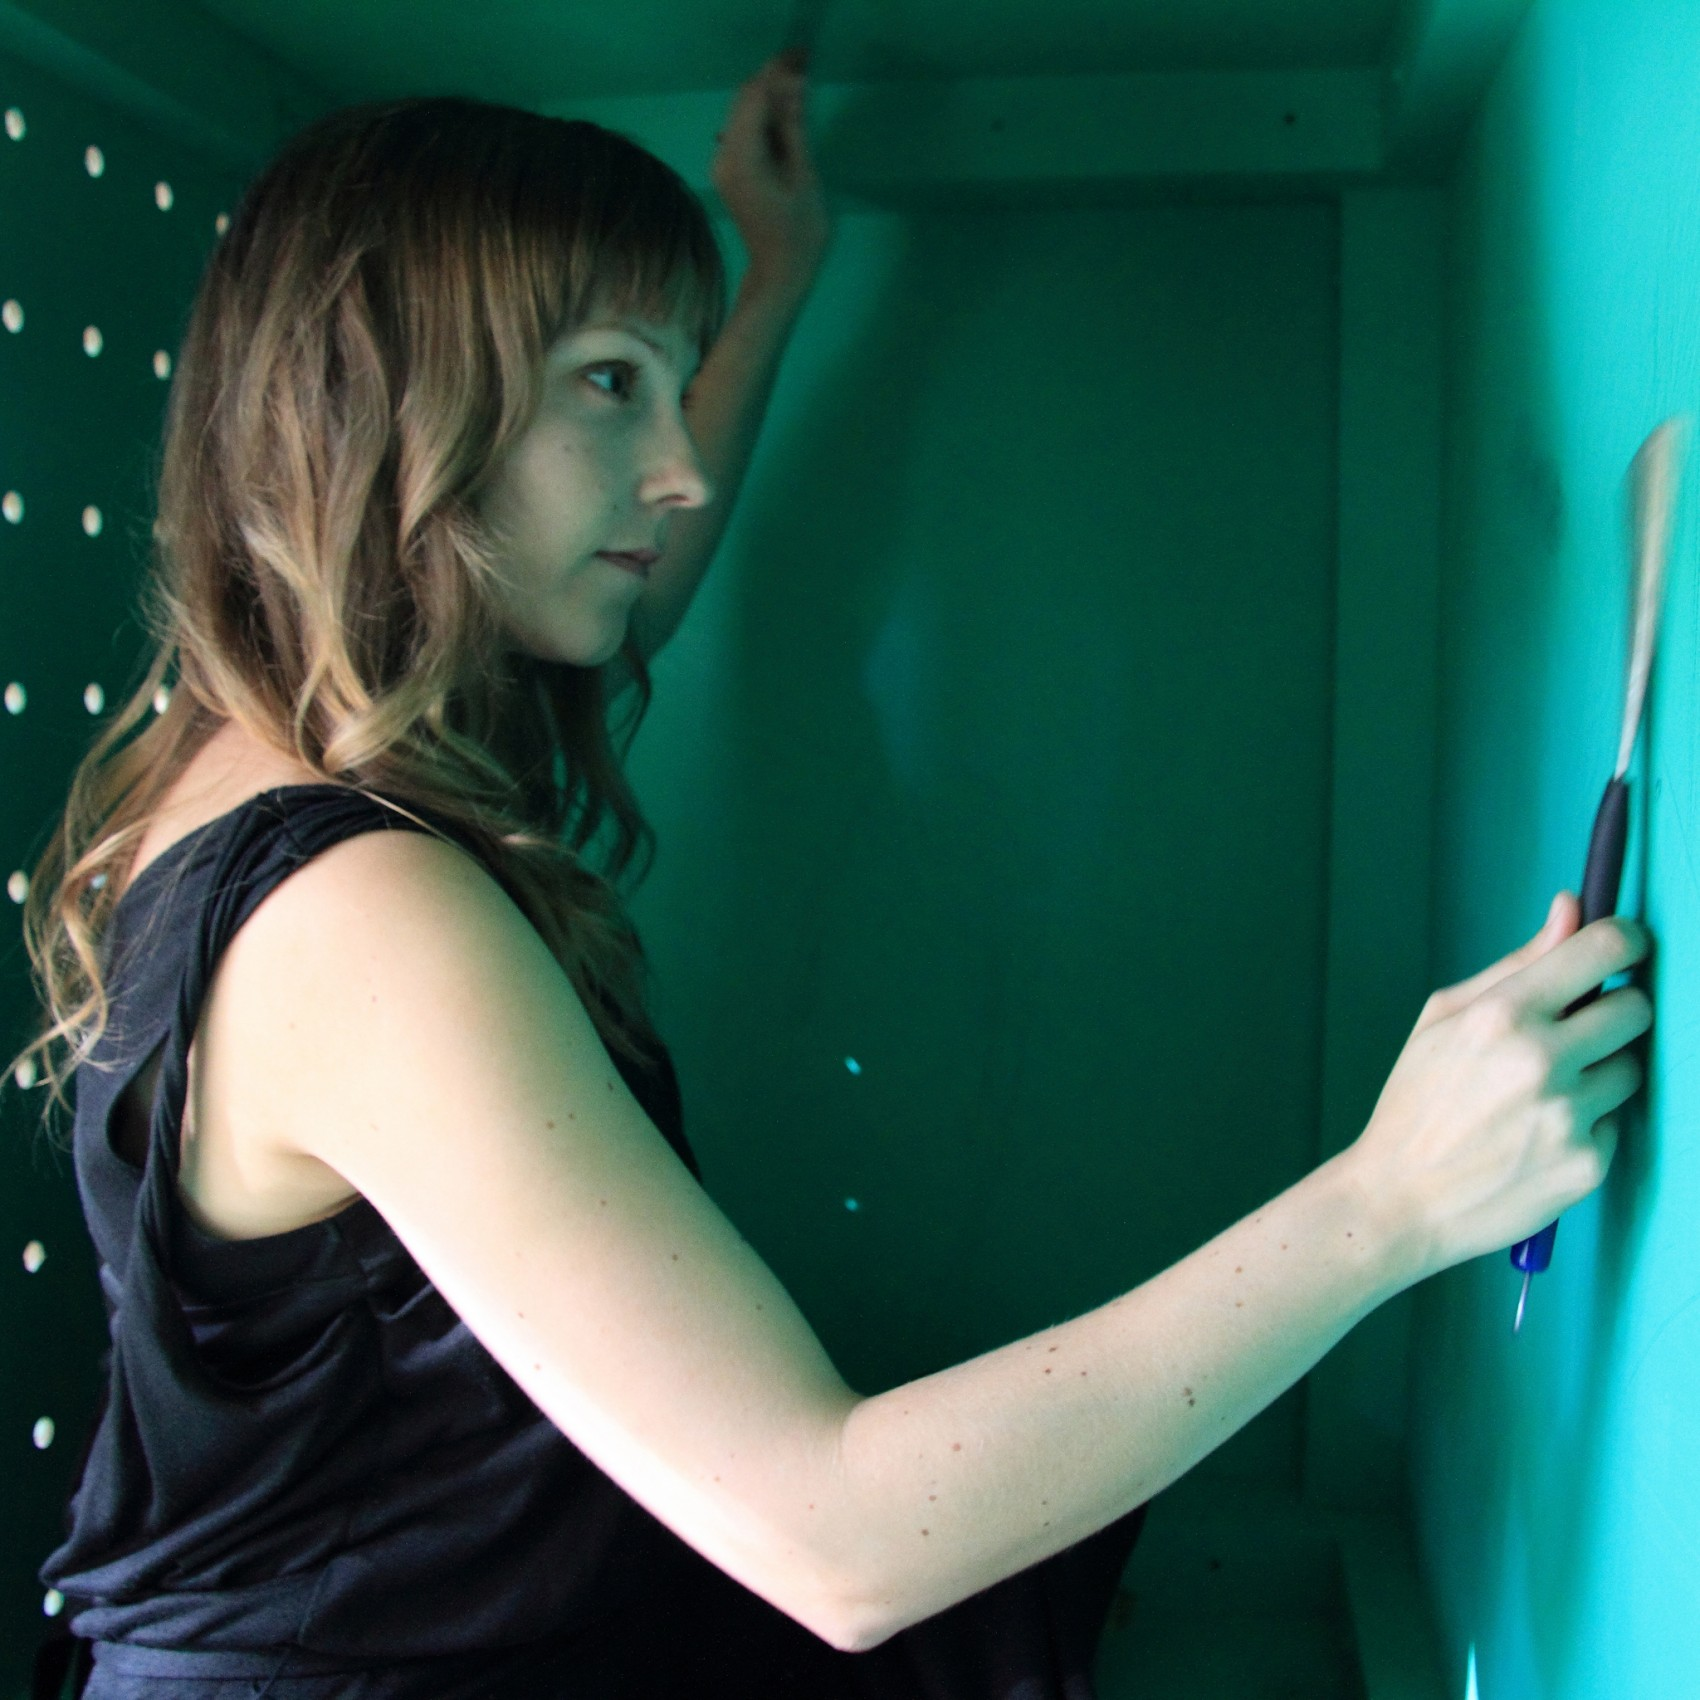 Side image of woman wearing black singlet using a small hand tool on a white wall